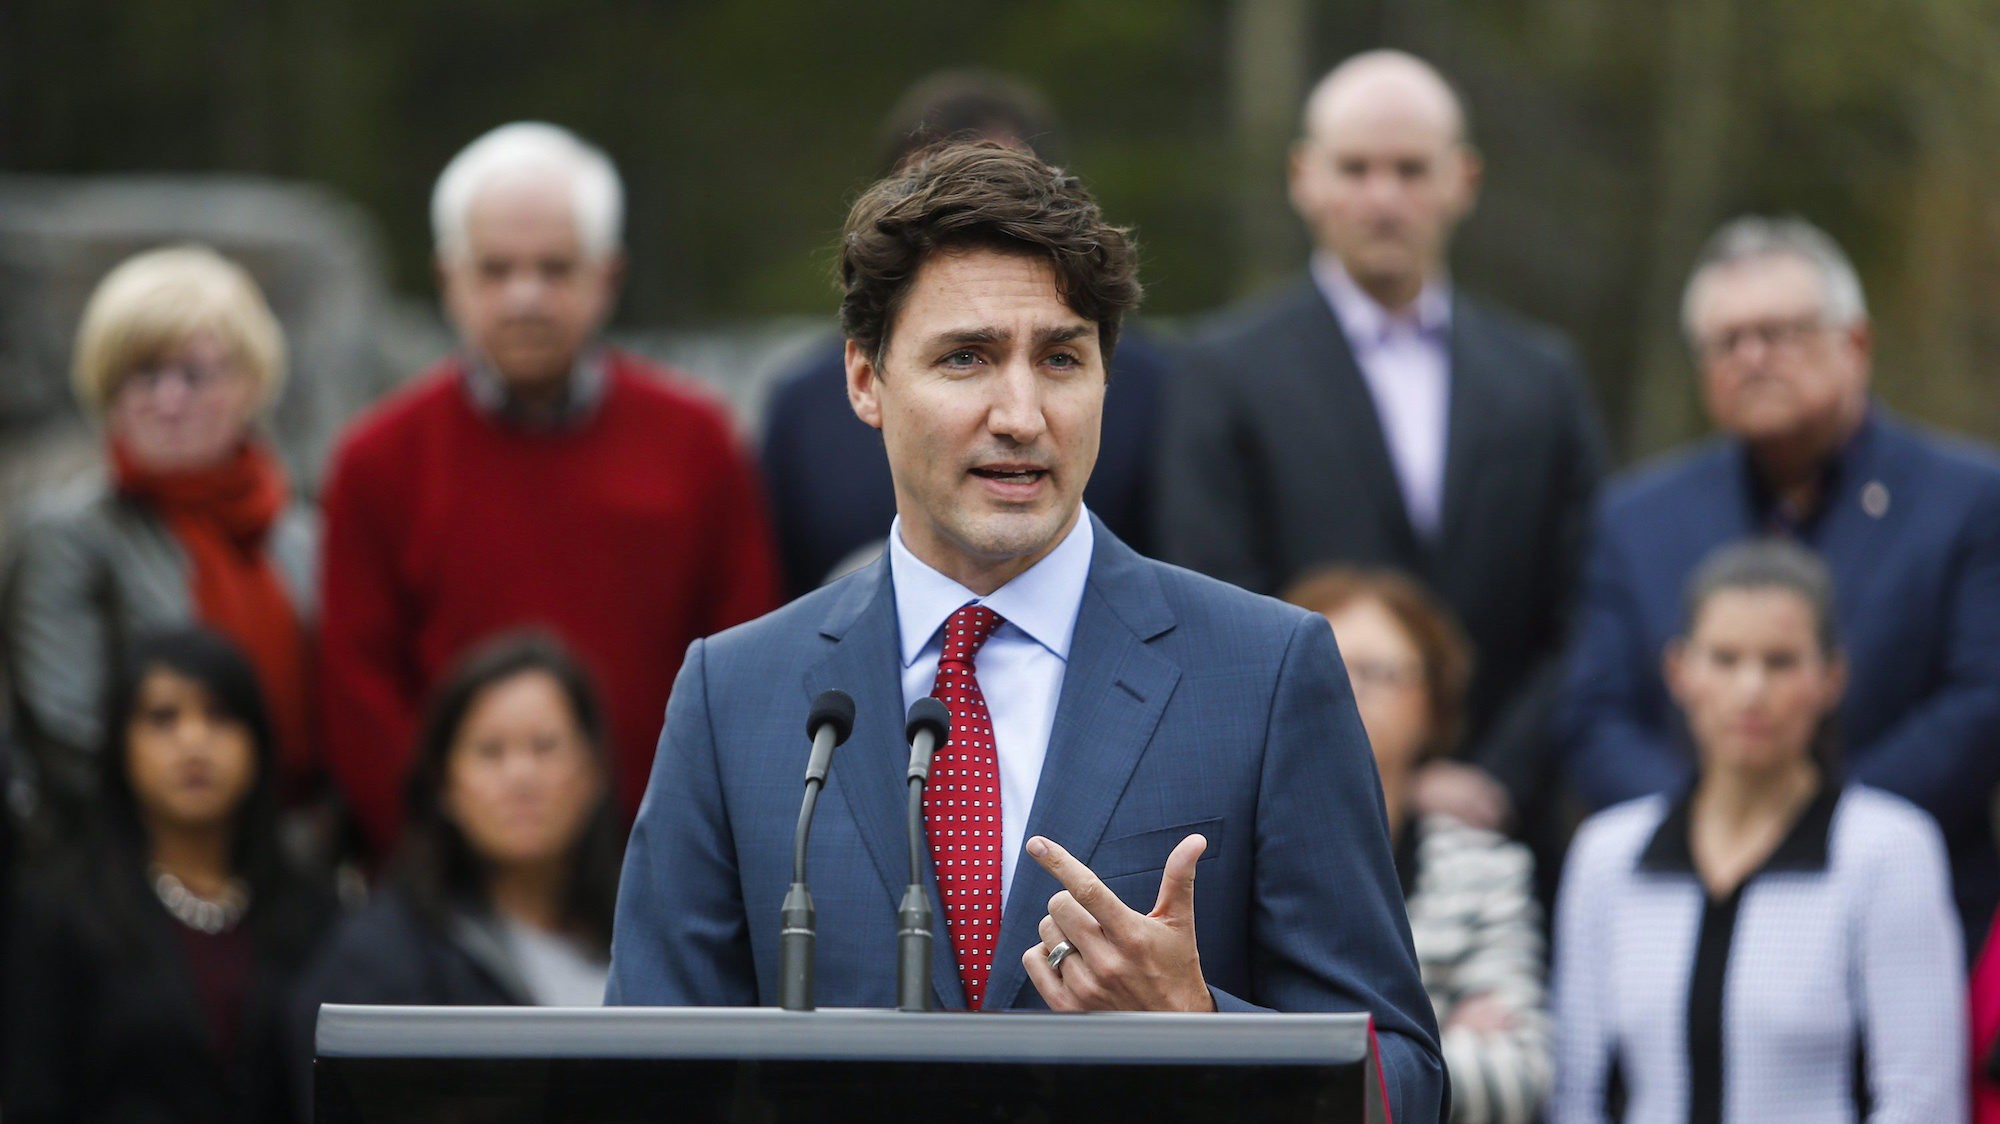 Justin Trudeau Stresses 'Canada Will Not Pay Ransom to Terrorists' After Hostage Beheaded